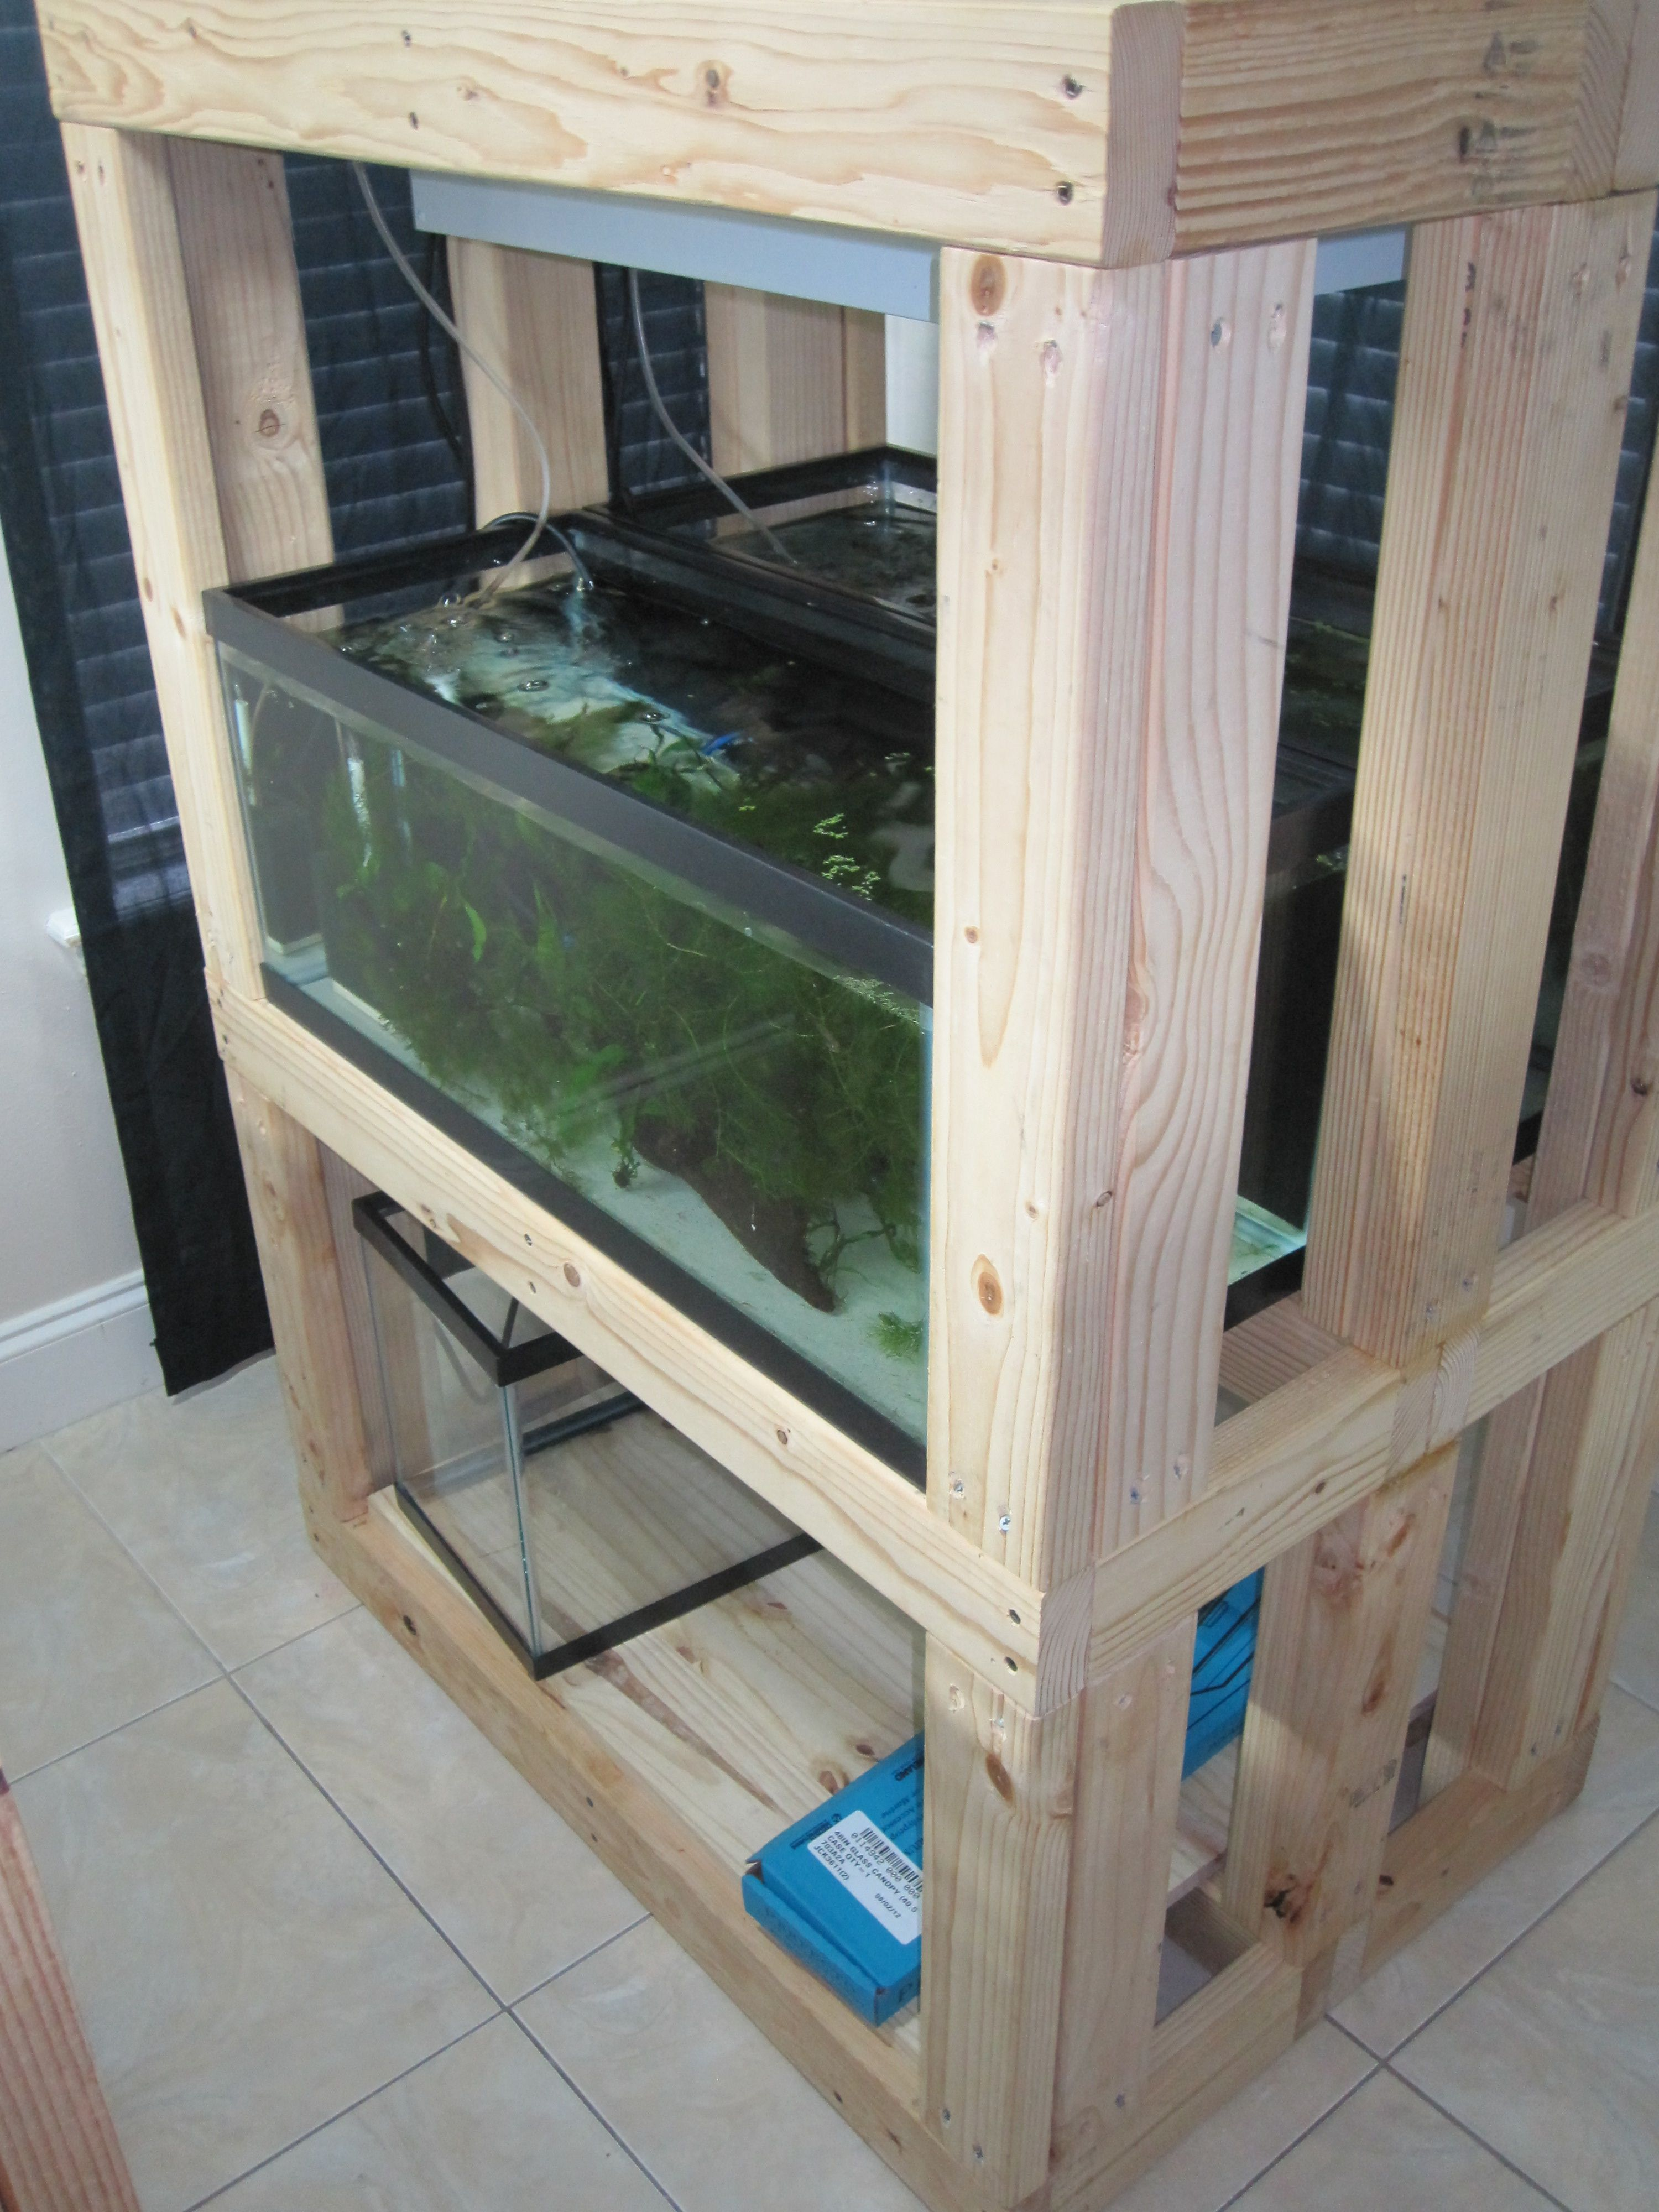 Diy Build An Aquarium Rack I Really Like This Idea But Would Make It Two Aquariums Long Rather Than Wide